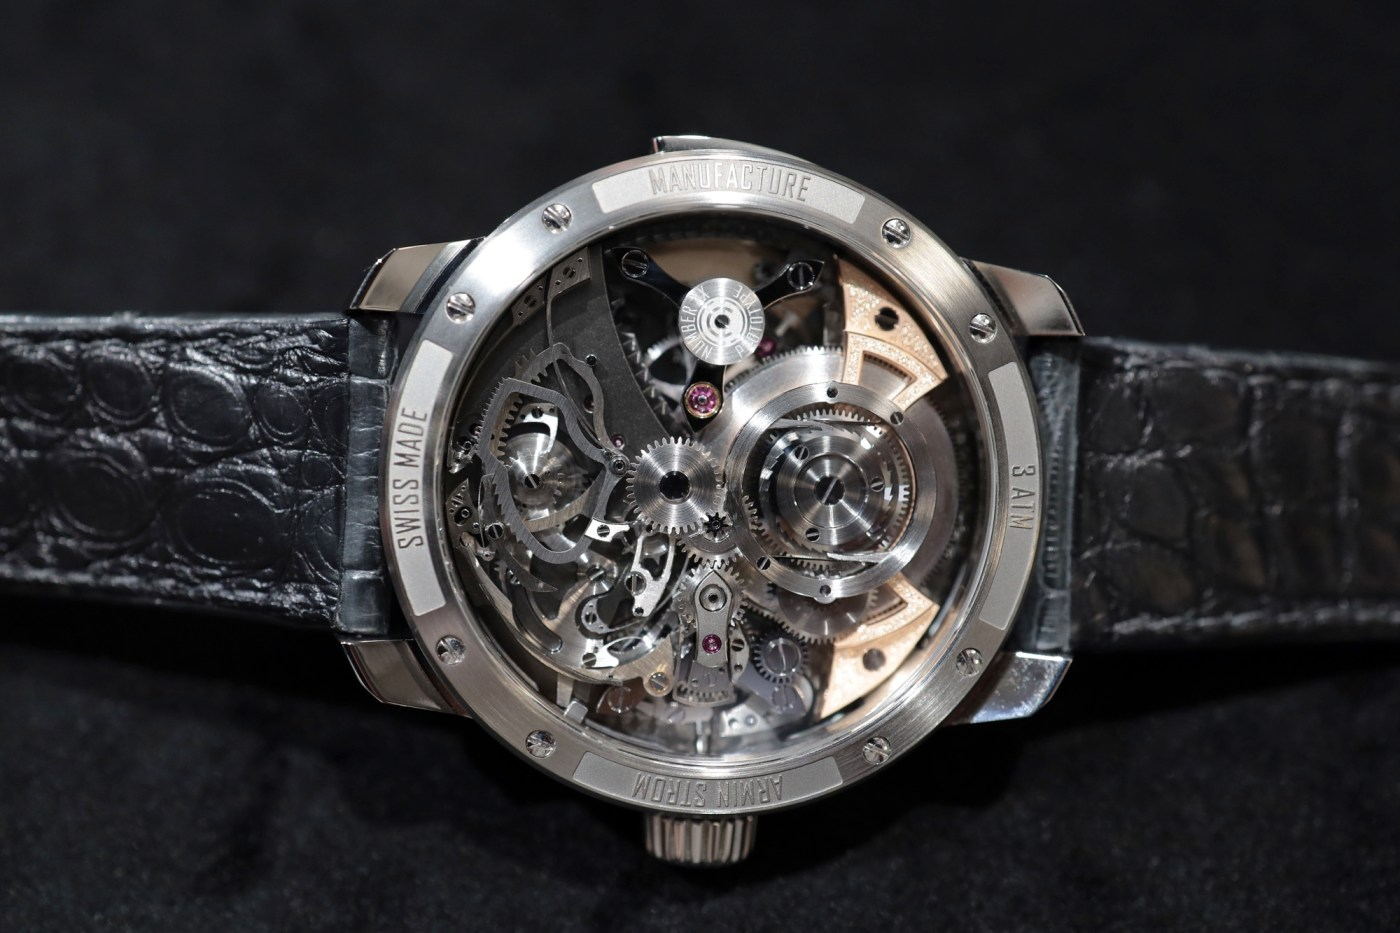 Armin Strom Minute Repeater Resonance caseback